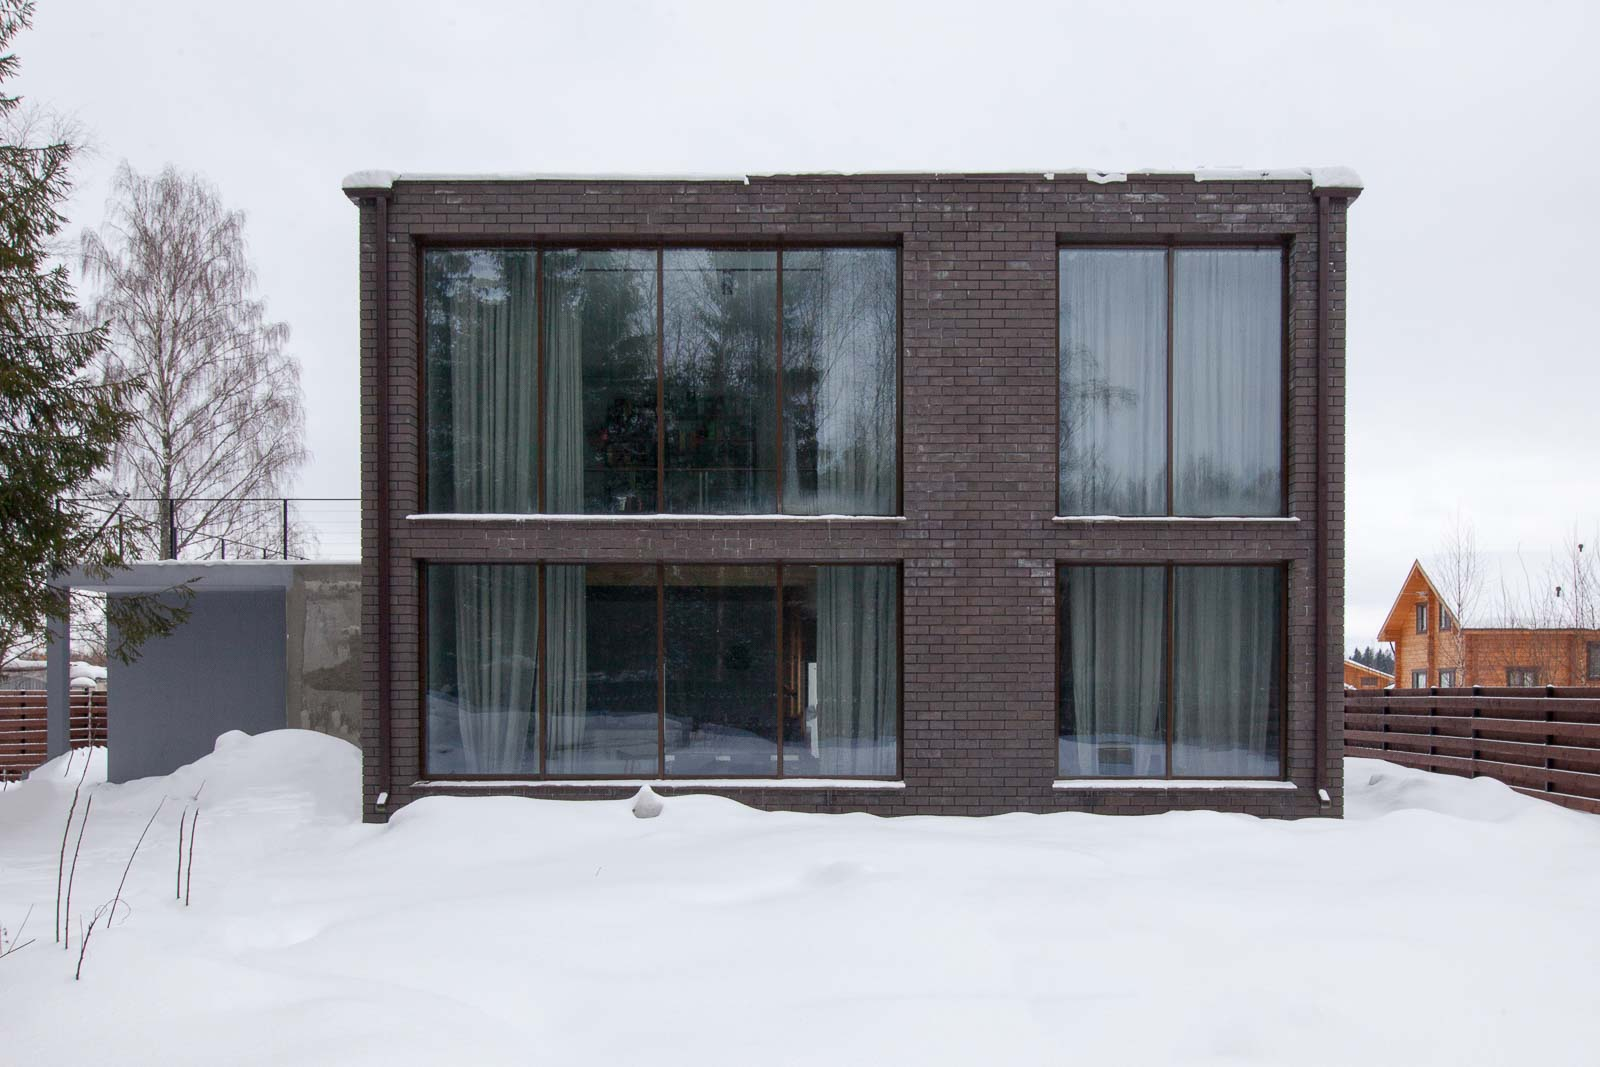 Facade of the house with flat roof in cold climate